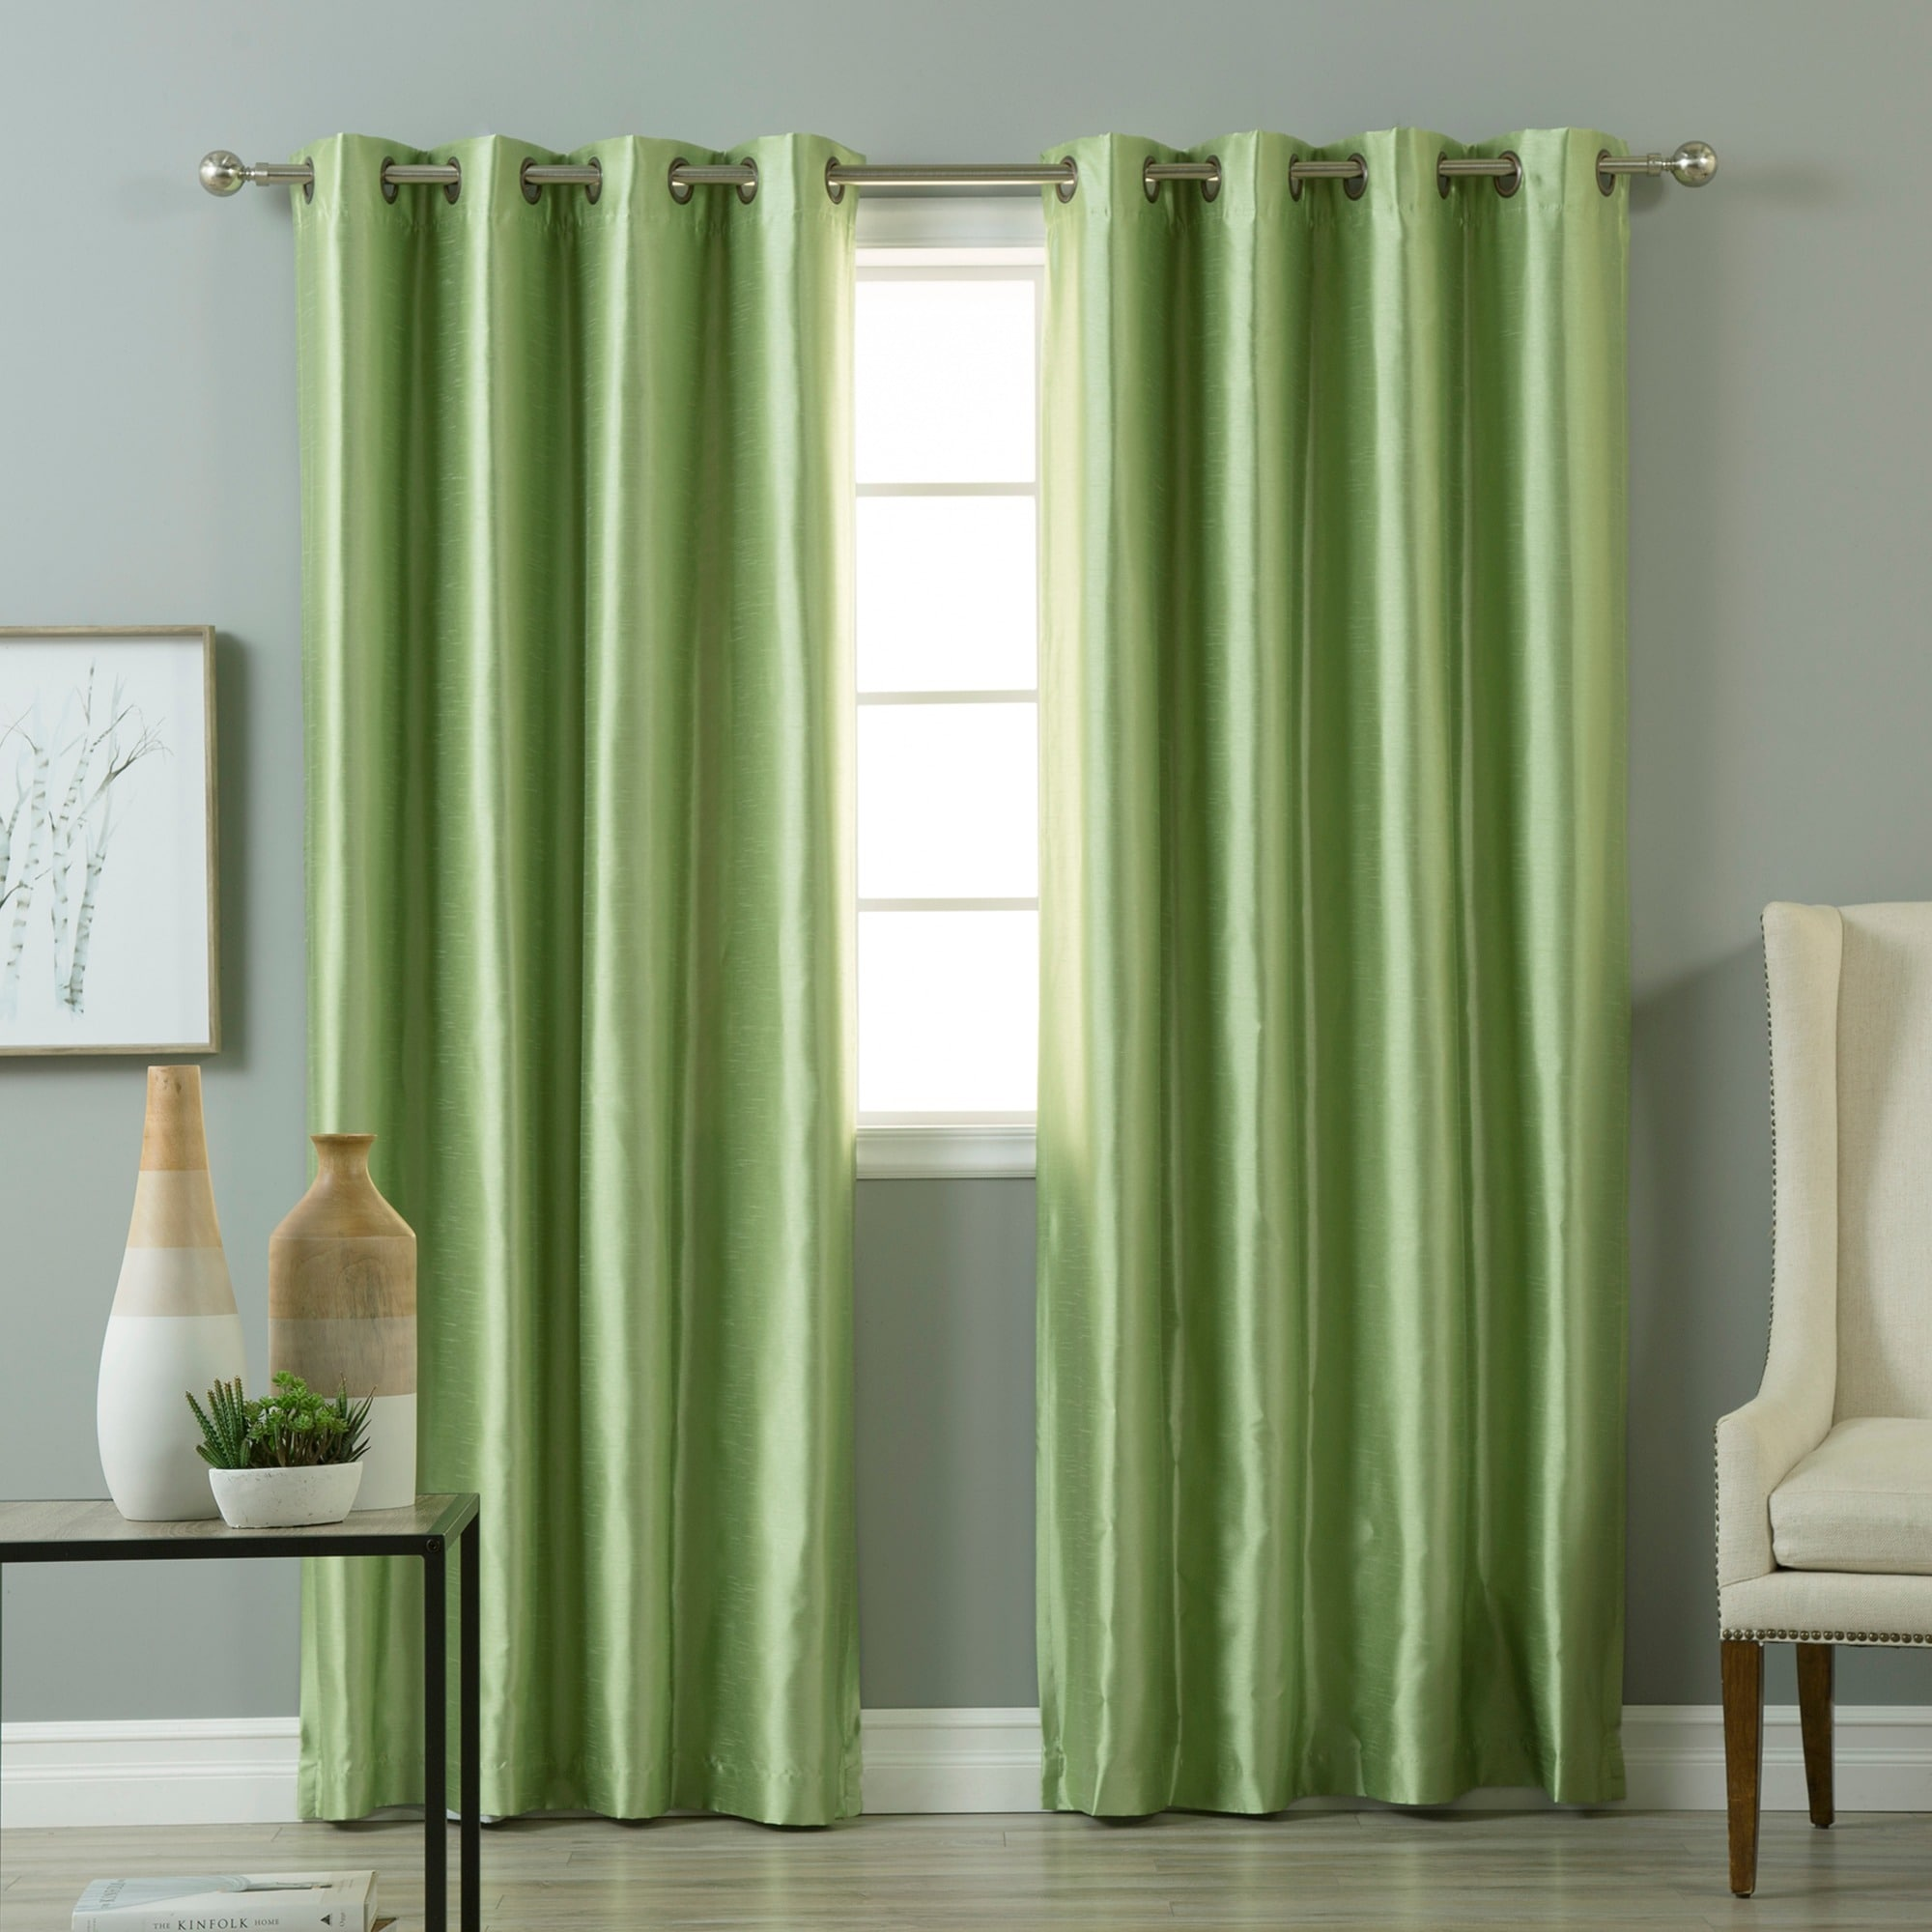 pair blackout free emerald product drapes panel garden shipping grommet green faux aurora curtain home top overstock silk today